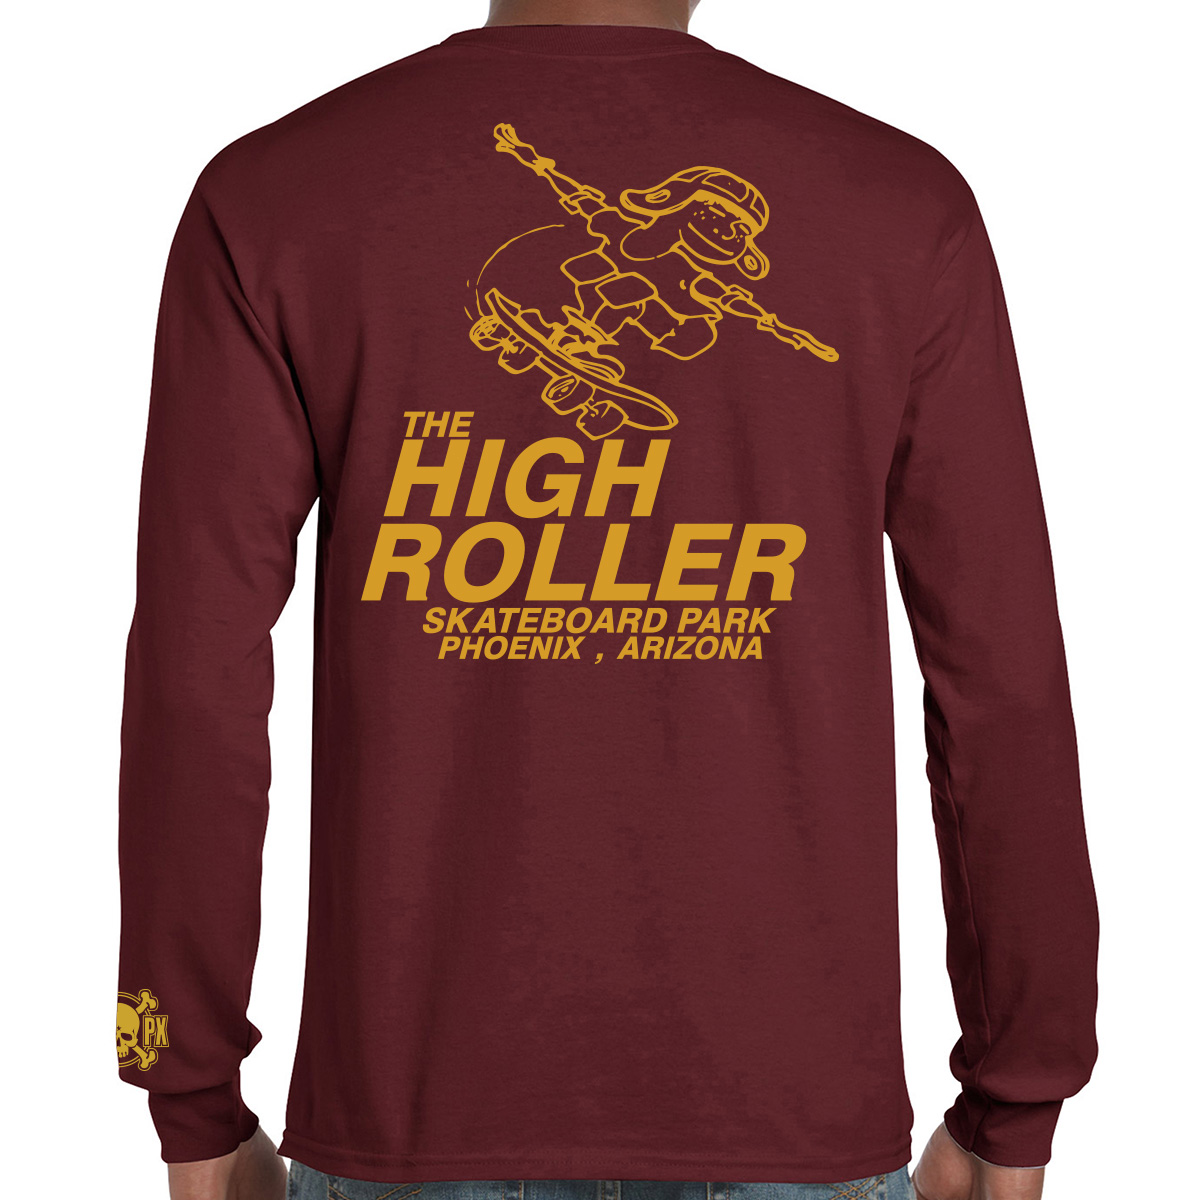 The High Roller Skateboard Park Maroon Long Sleeve T-shirt